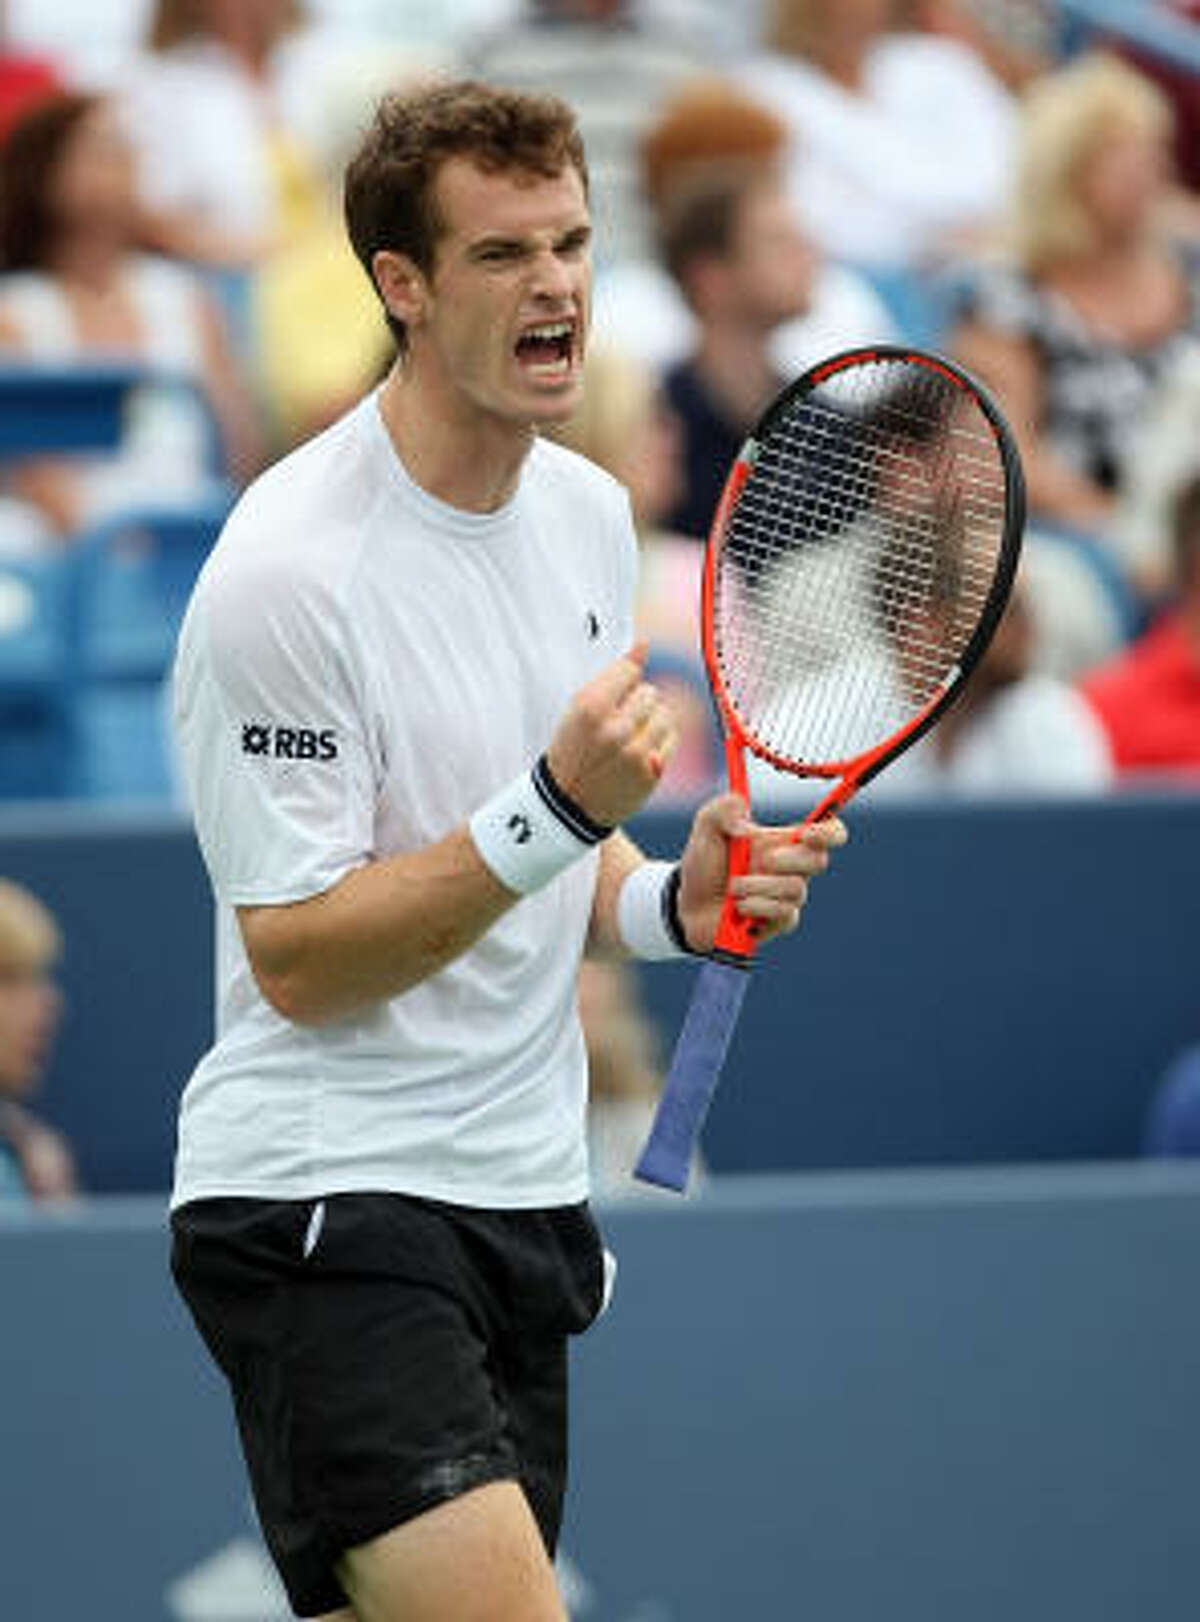 Andy Murray (2) Age: 22 Country: Britain 2009 Match Record: 53-8 2009 Singles Titles: 5 Career Singles Titles: 13 Major Titles: 0 Last 5 U.S. Opens: '08-Runner-Up, '07-Lost in 3rd Round, '06-4th, '05-2nd, '04-Did Not Play Comment: Moved up to second in the ATP rankings this month, highest showing for a British man. ... There hasn't been a British male champion at any Grand Slam tennis tournament since the 1930s. ... Credits his showing at U.S. Open a year ago, which included upset of Rafael Nadal in the semifinals, with boosting his career.